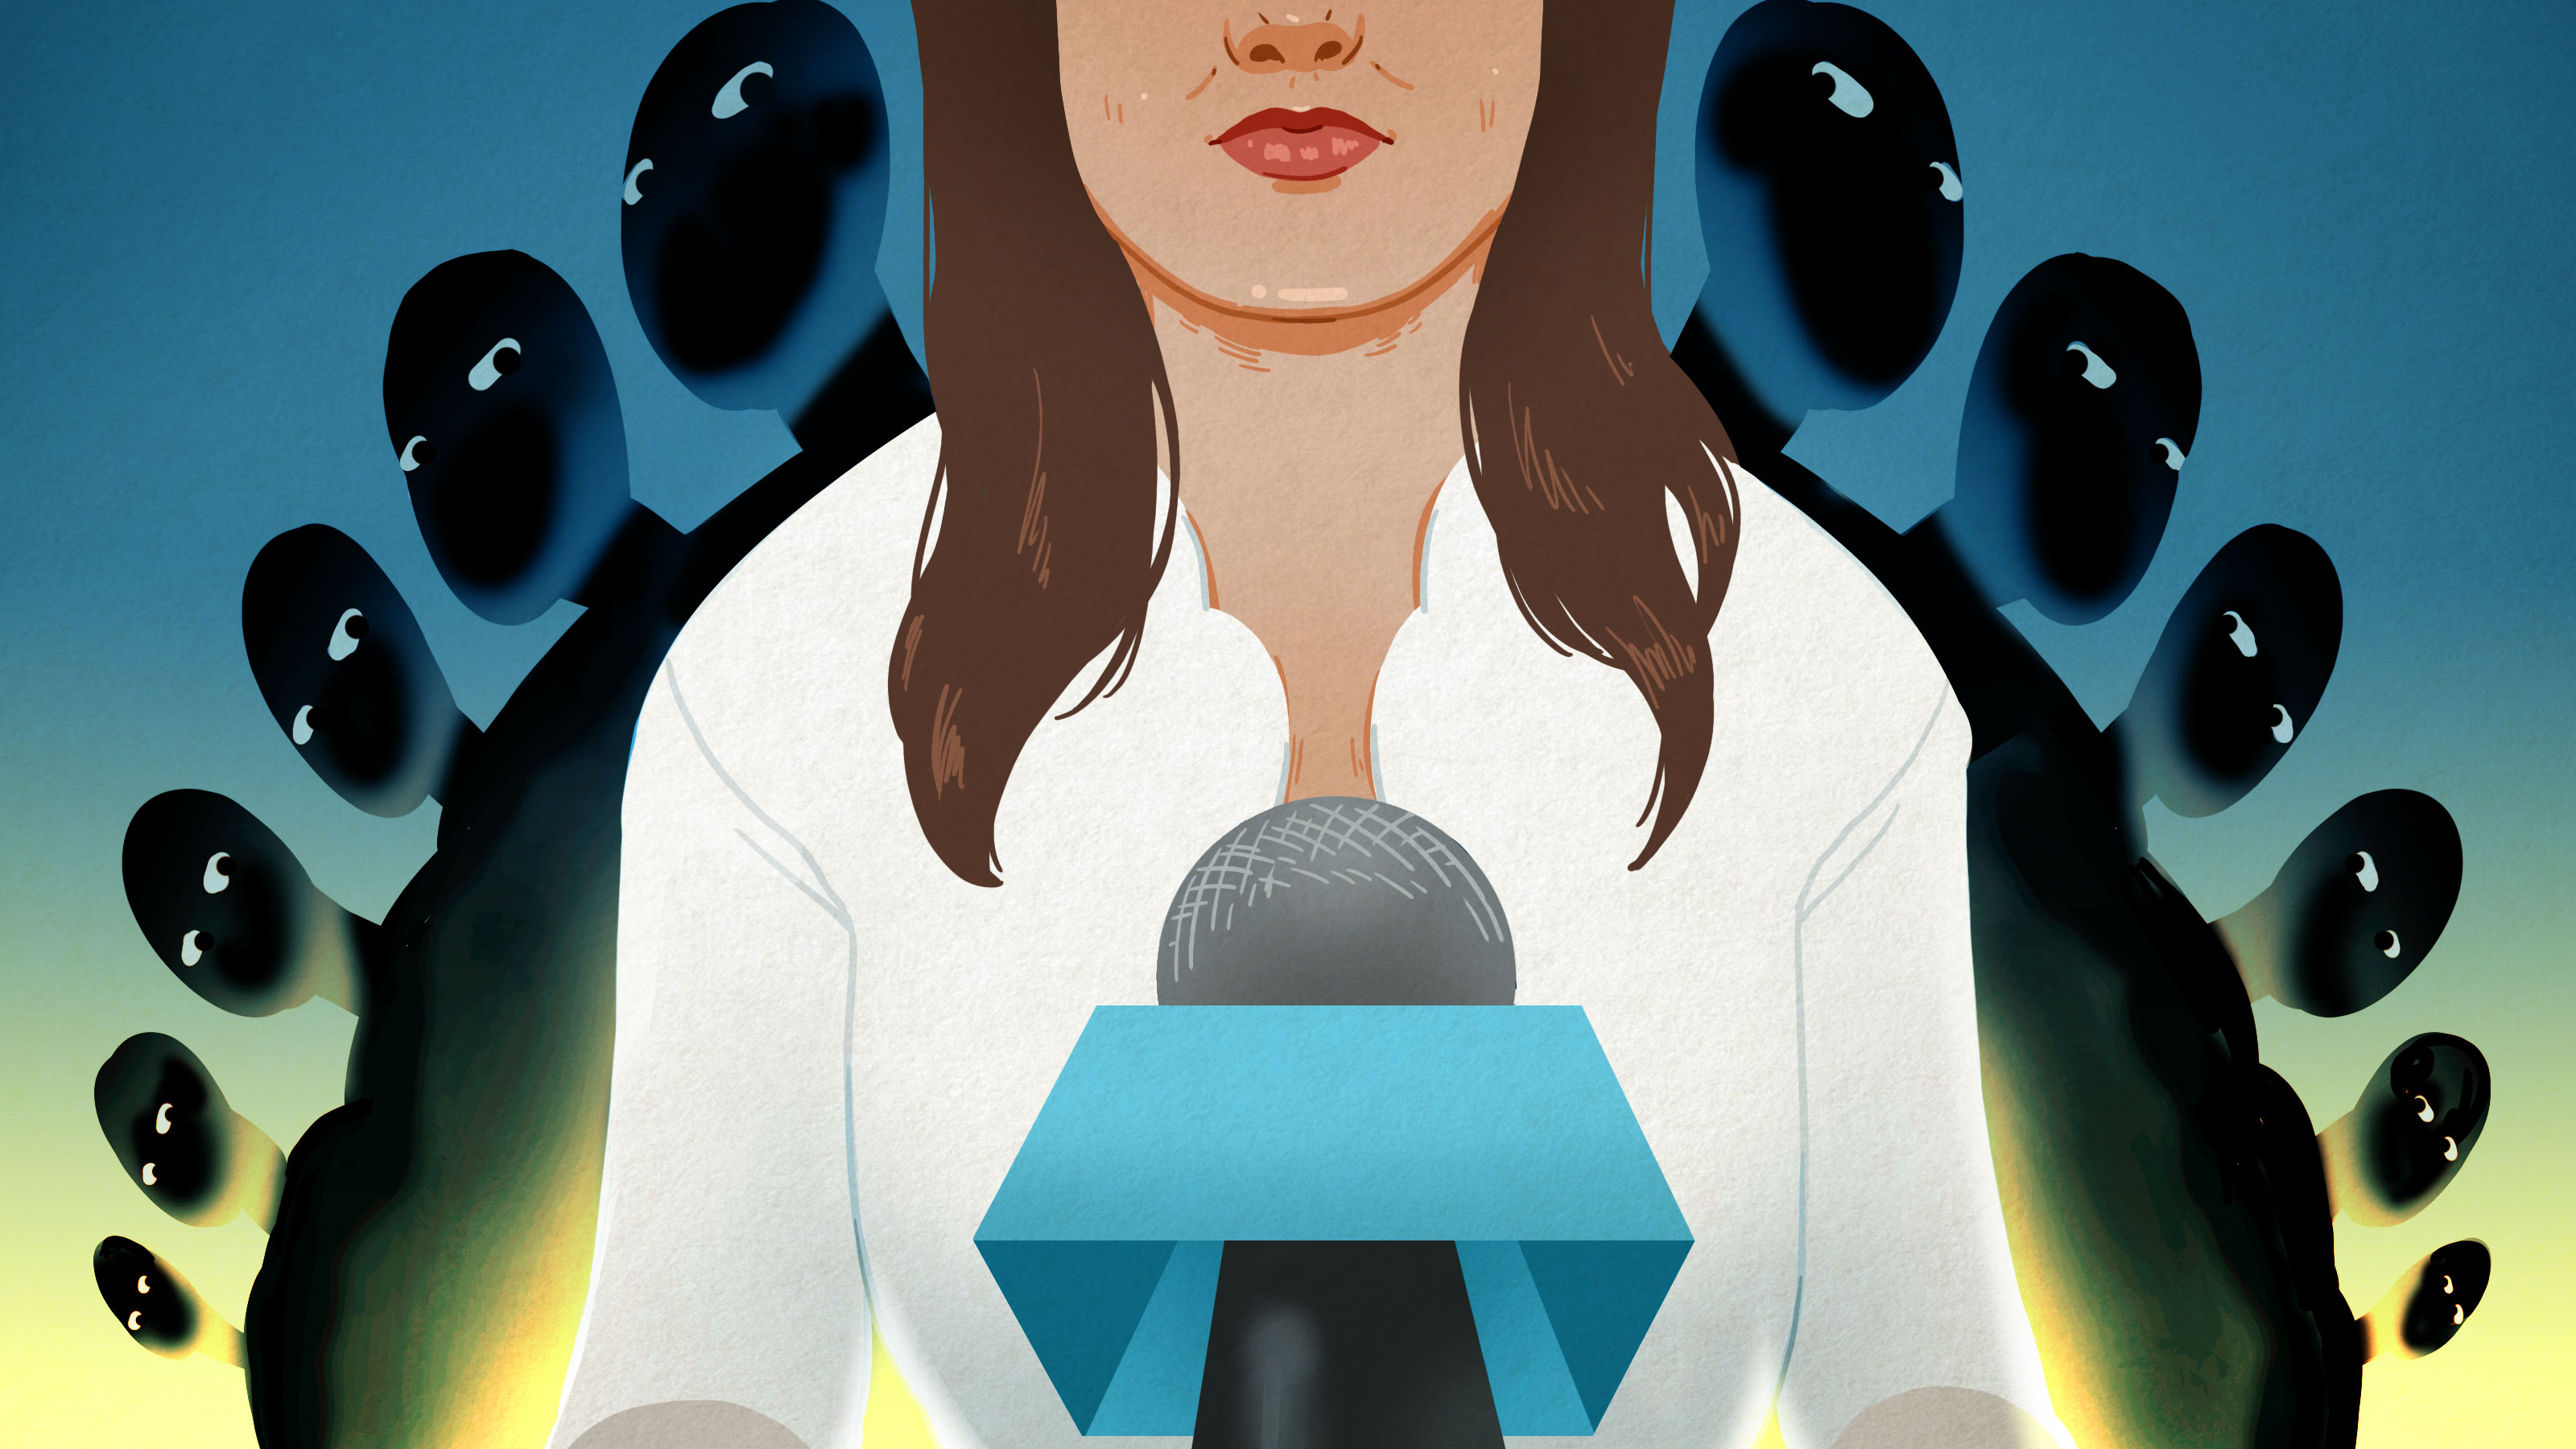 Illustration of a woman in front of a microphone